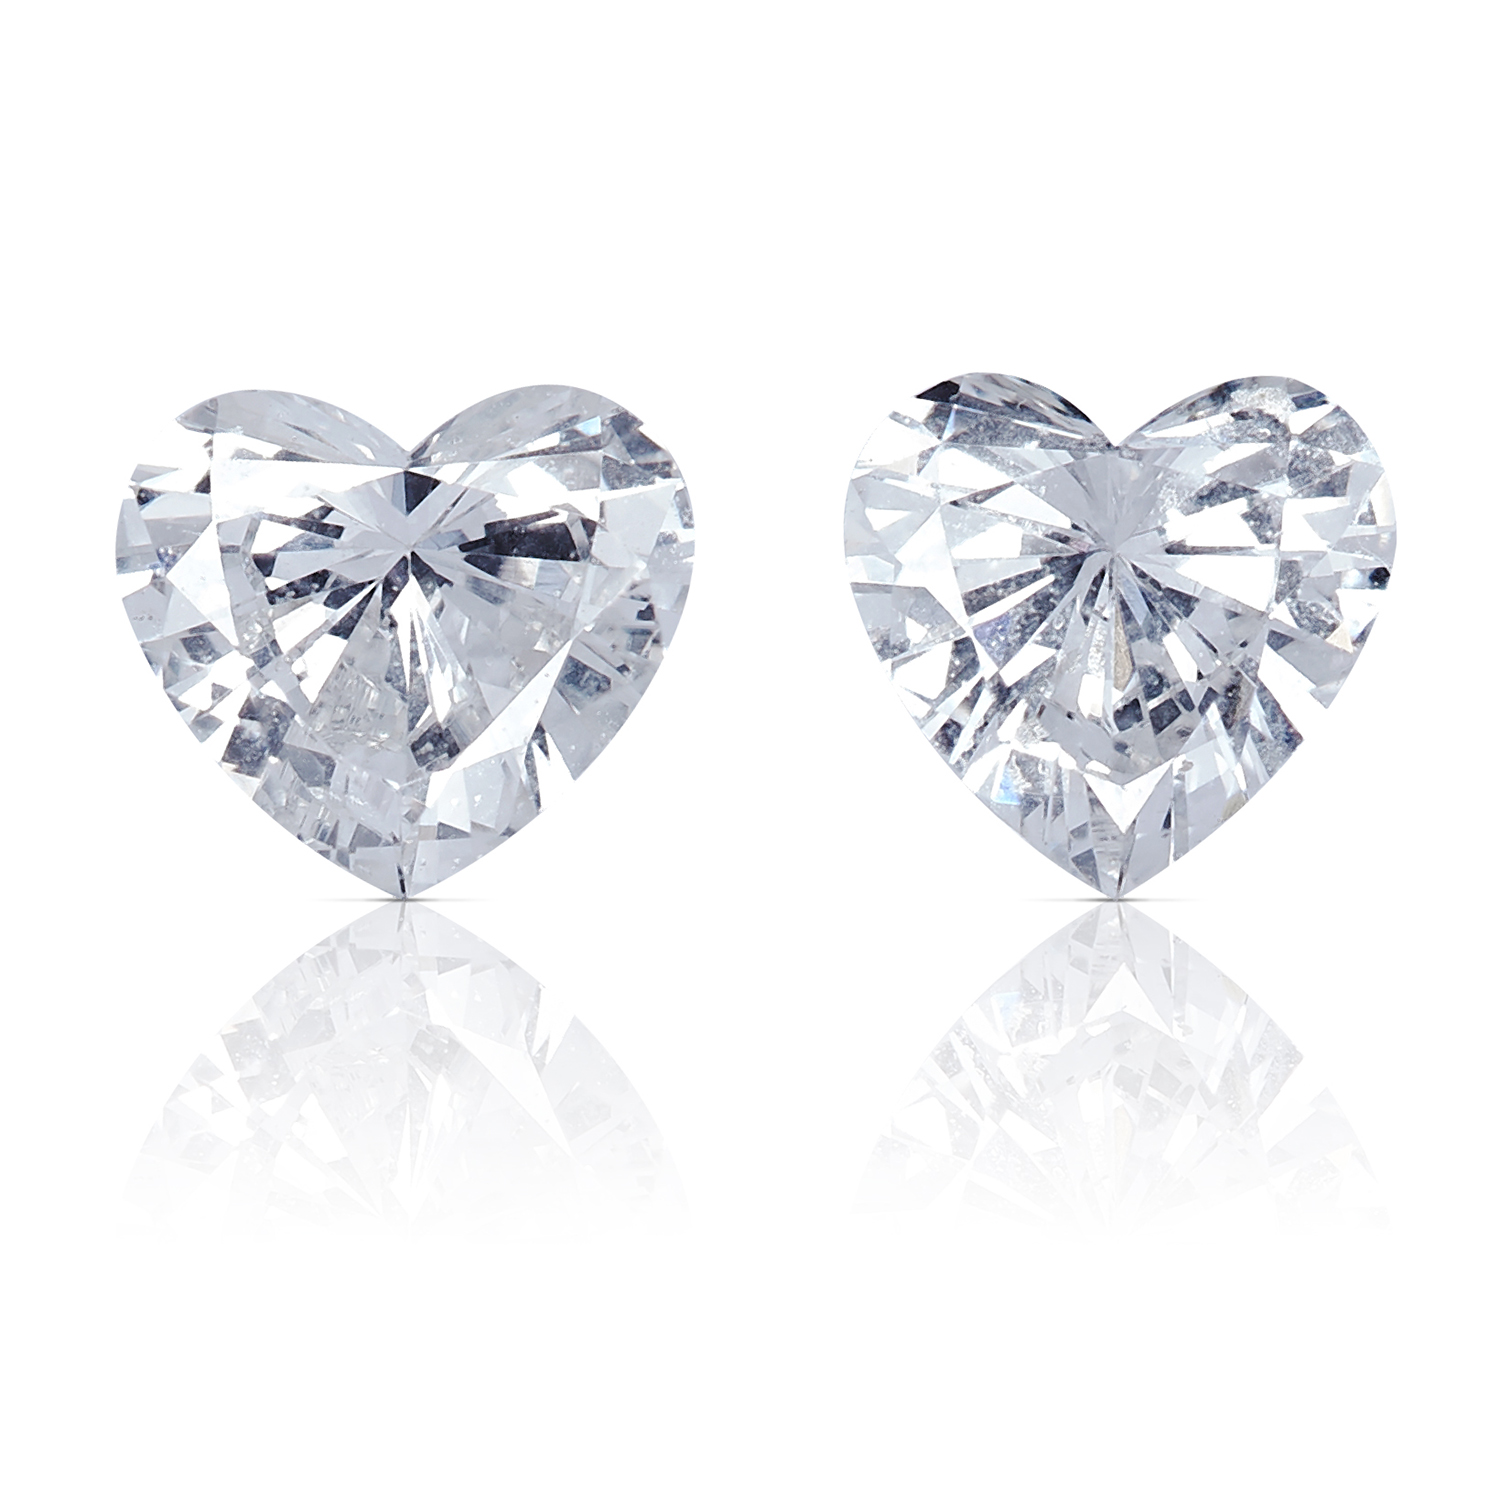 A PAIR OF HEART SHAPED BRILLIANT CUT DIAMONDS, TOTALLING 0.40cts, UNMOUNTED.